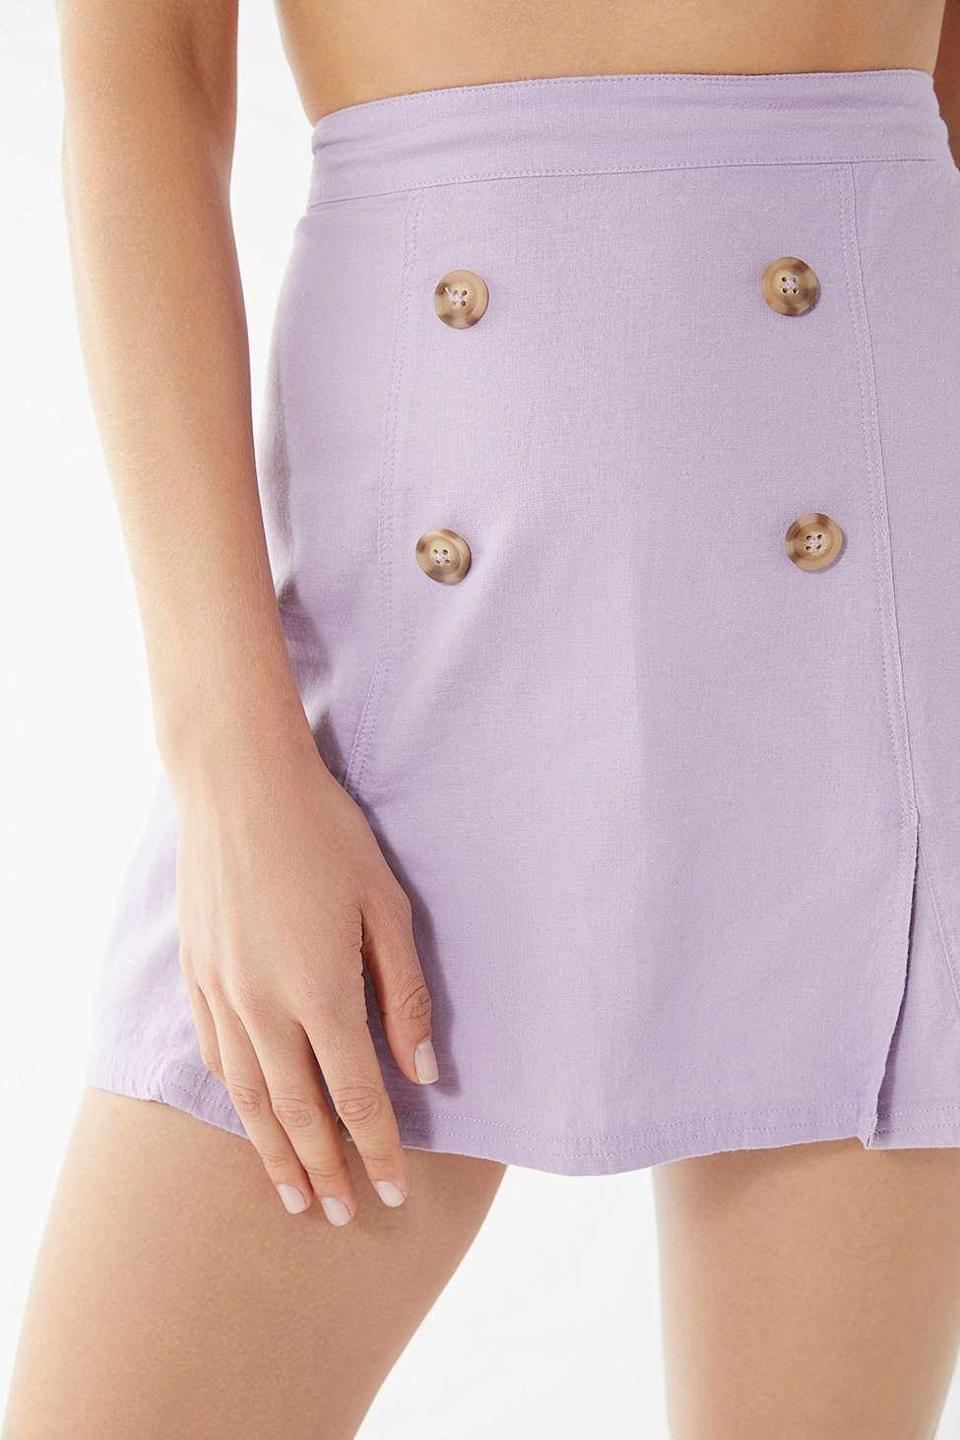 So into miniskirts right now. Available in sizes XS to XL.